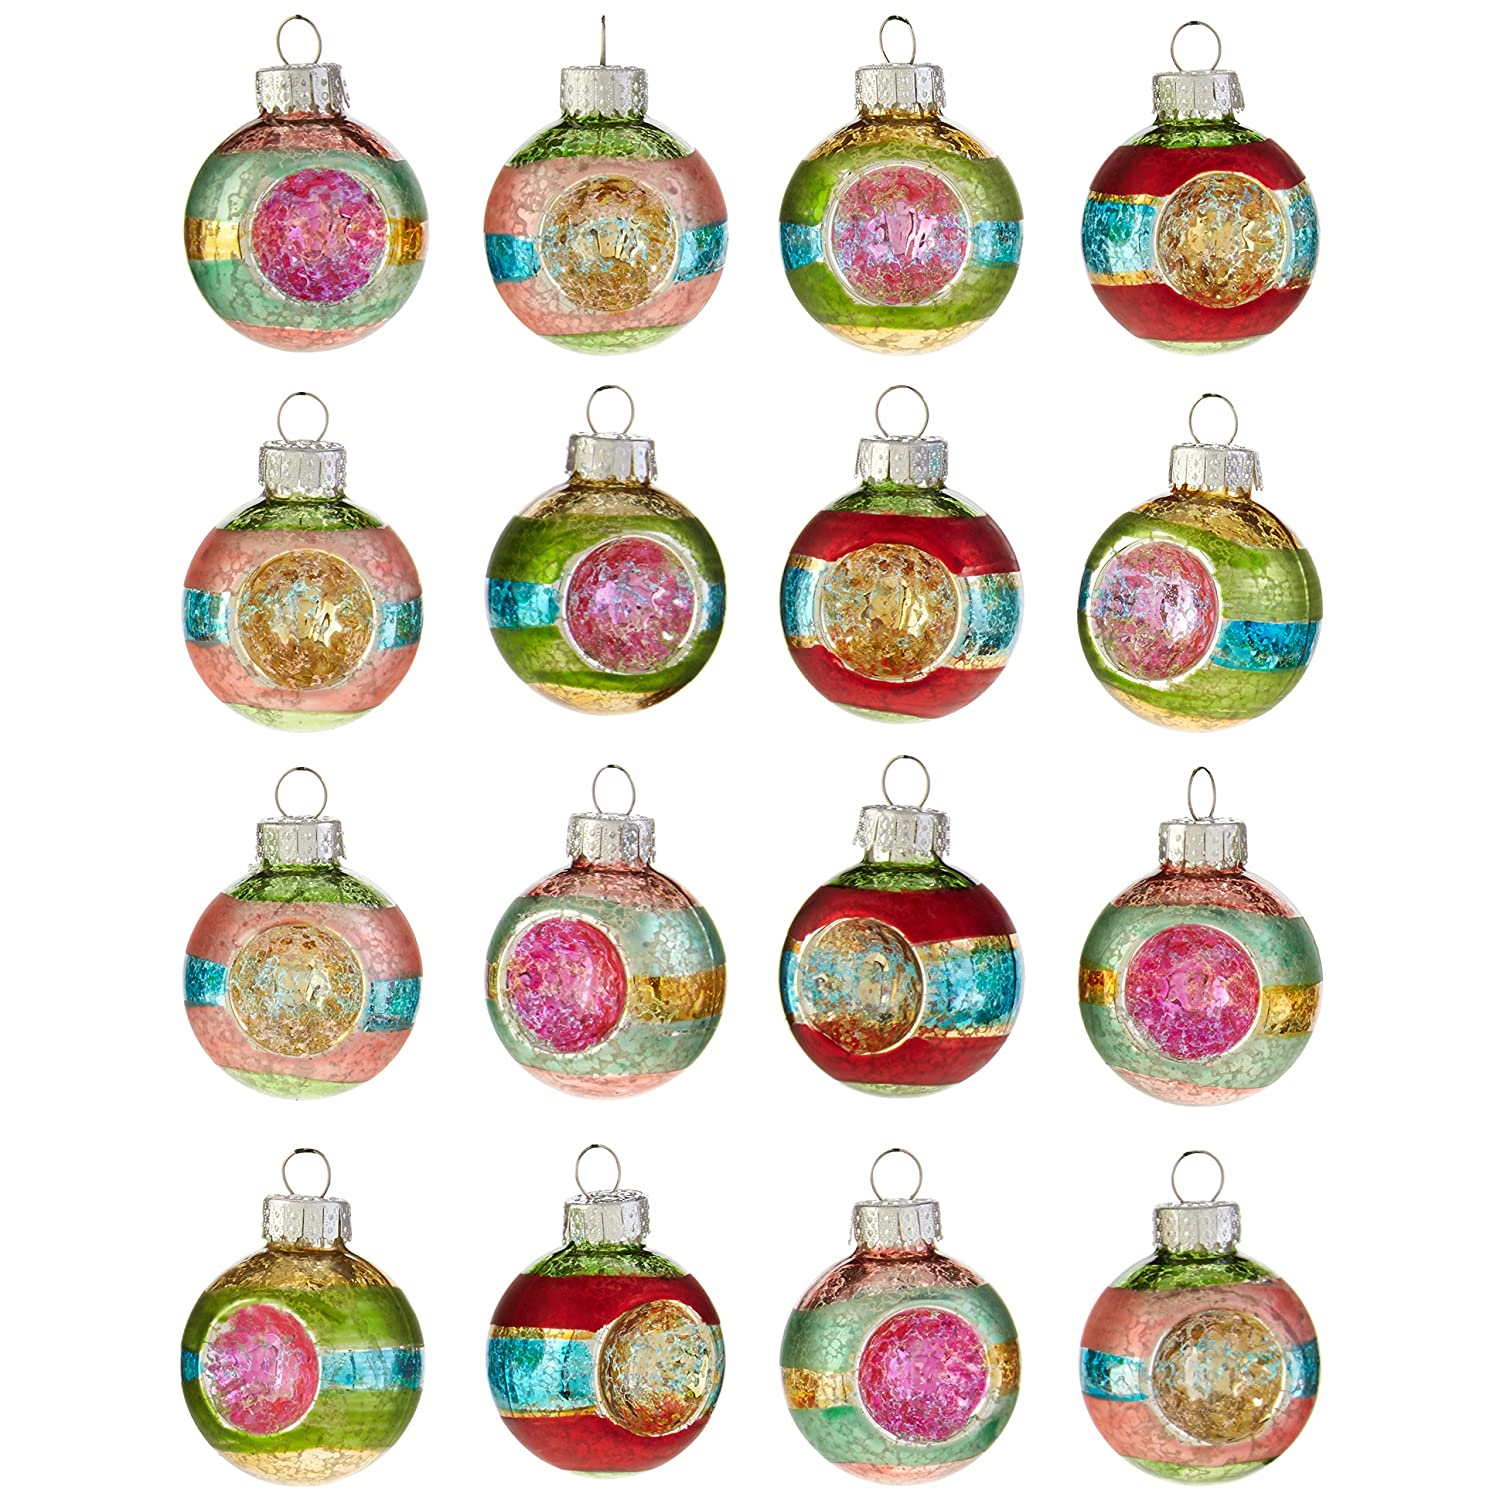 Raz Imports Vintage Ball Reflector Glass Christmas Ornaments Assorted Boxed Set Of 16